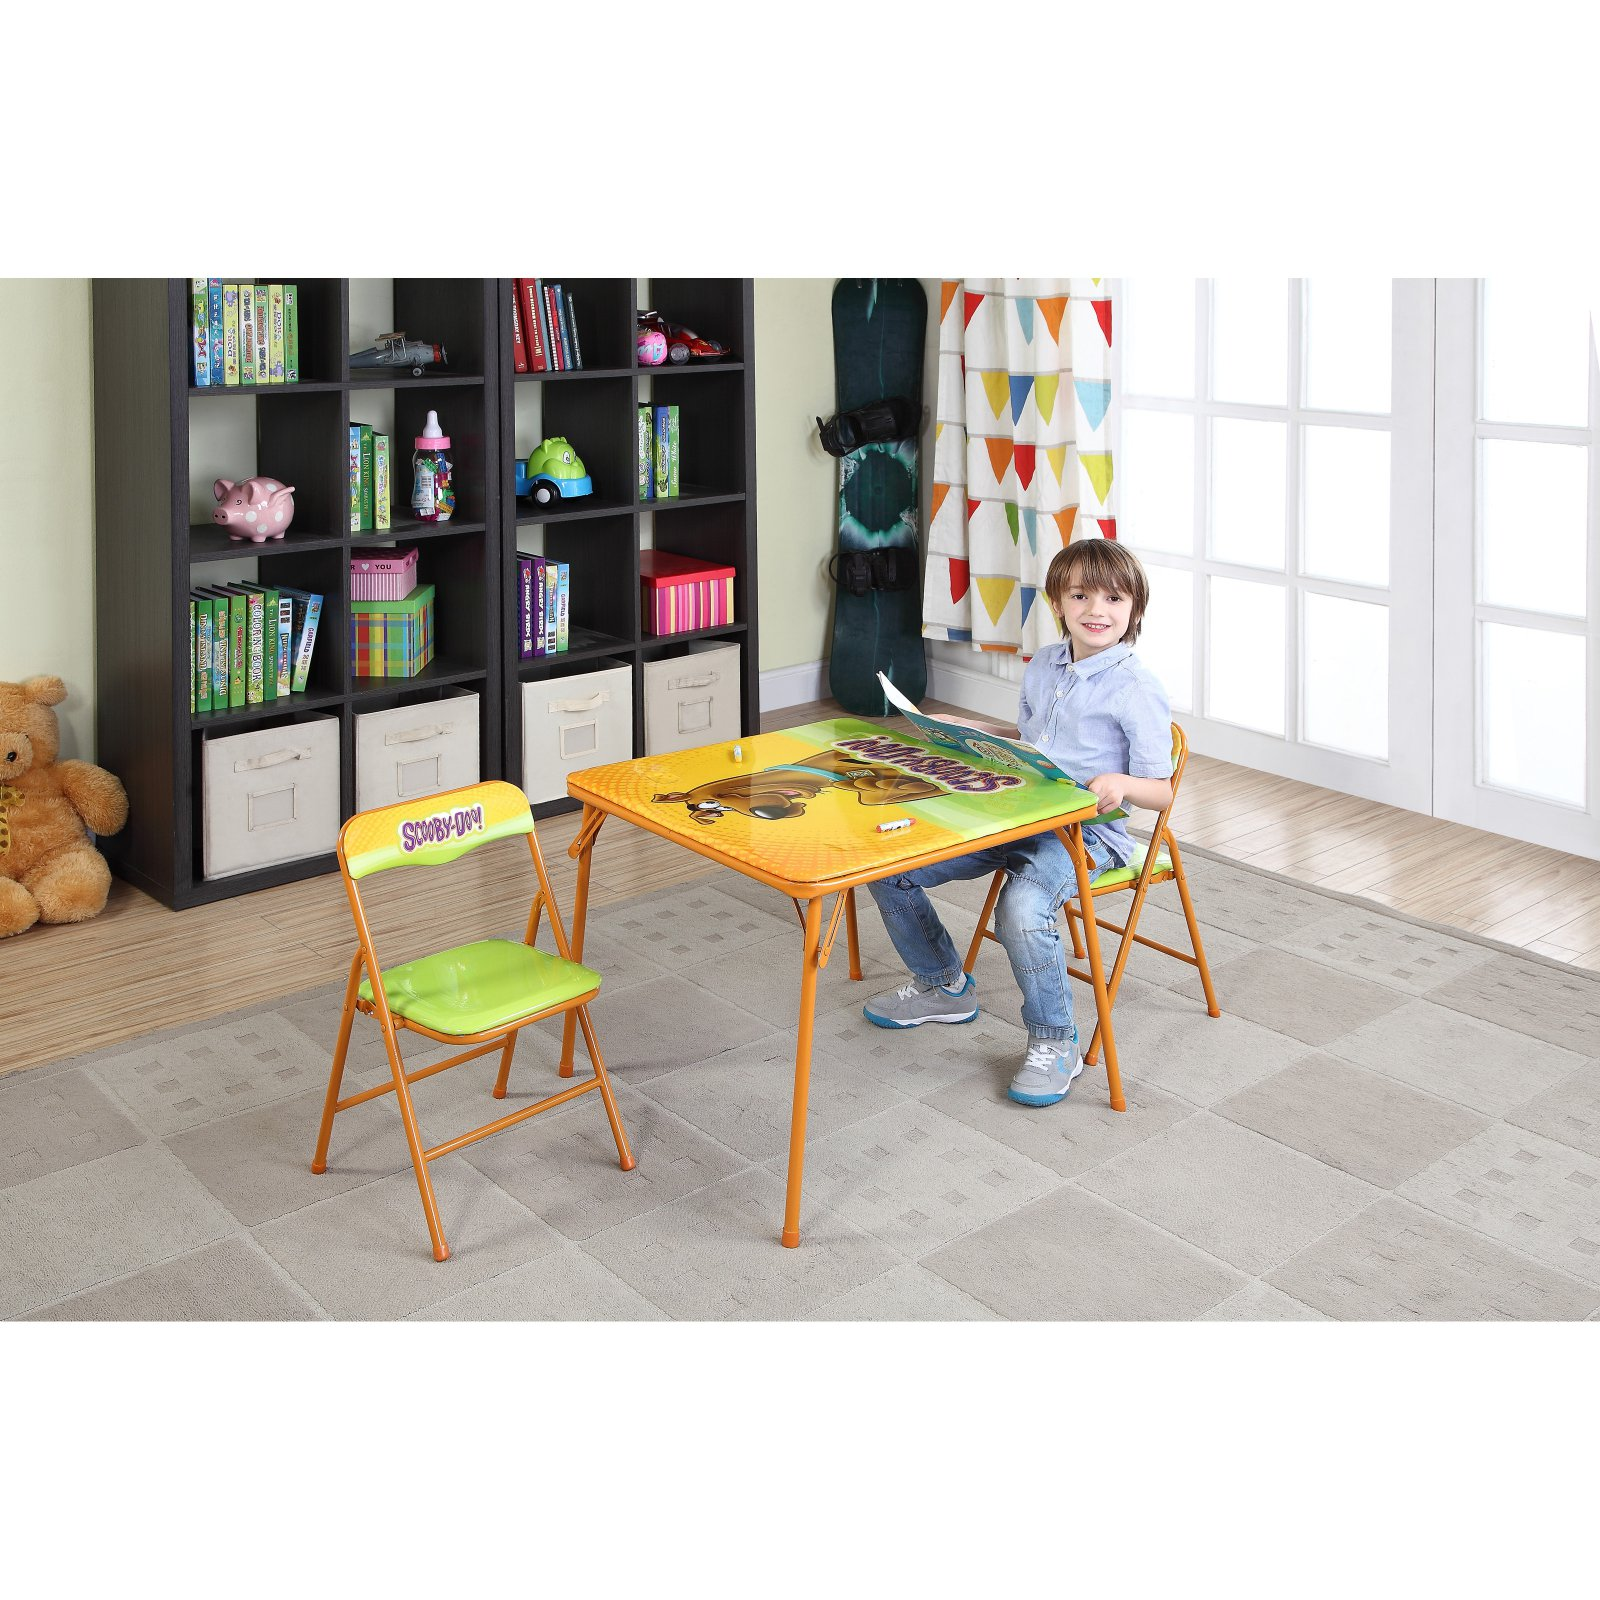 Children's Trestle Table O Kids Scooby Doo Children S Metal Table And Chairs Set